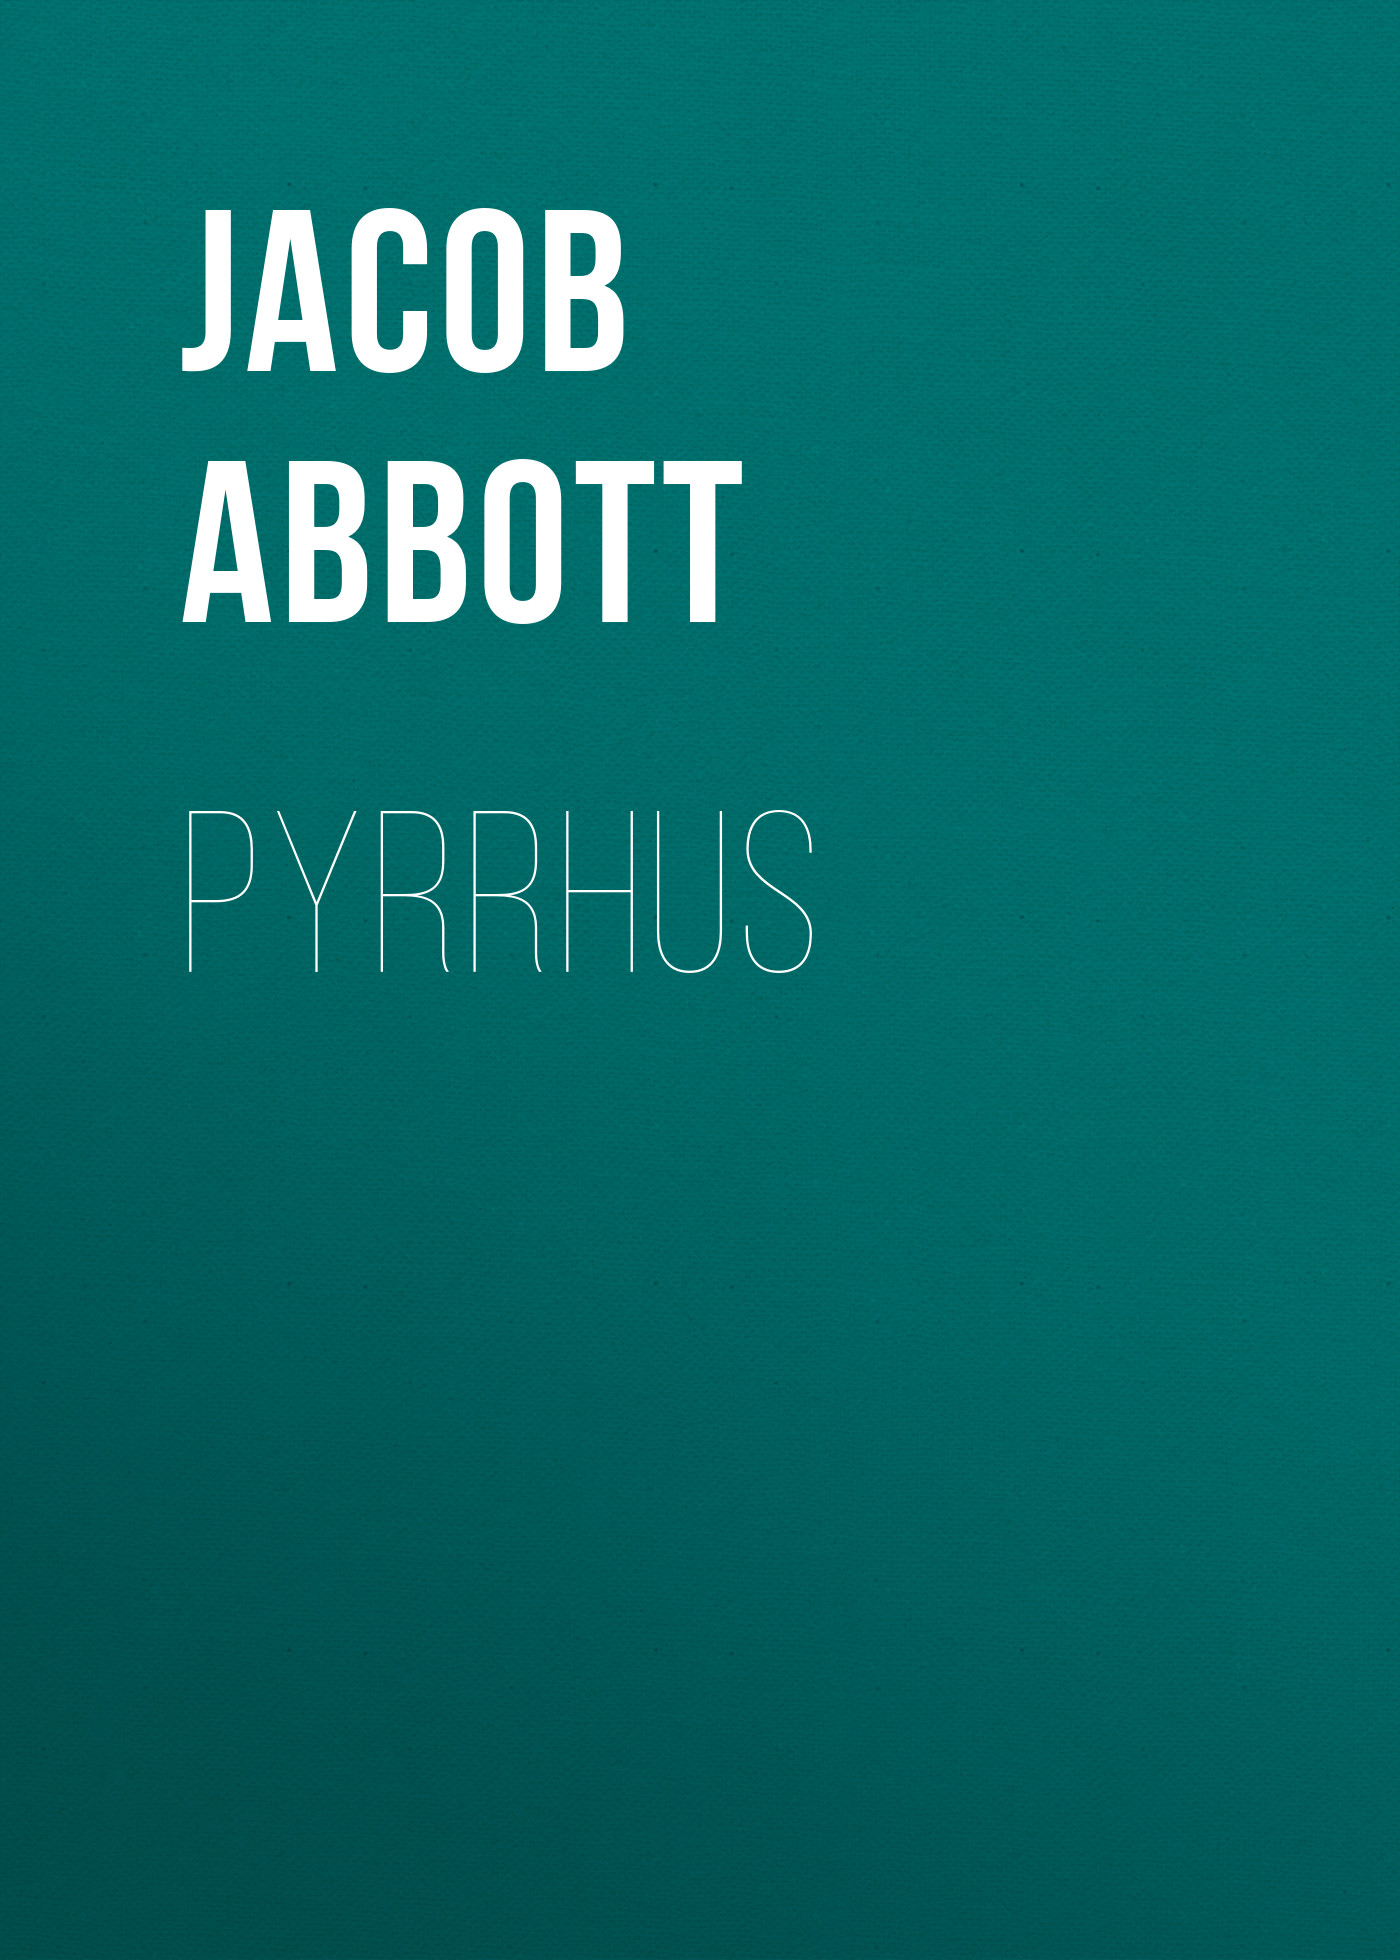 Abbott Jacob Pyrrhus